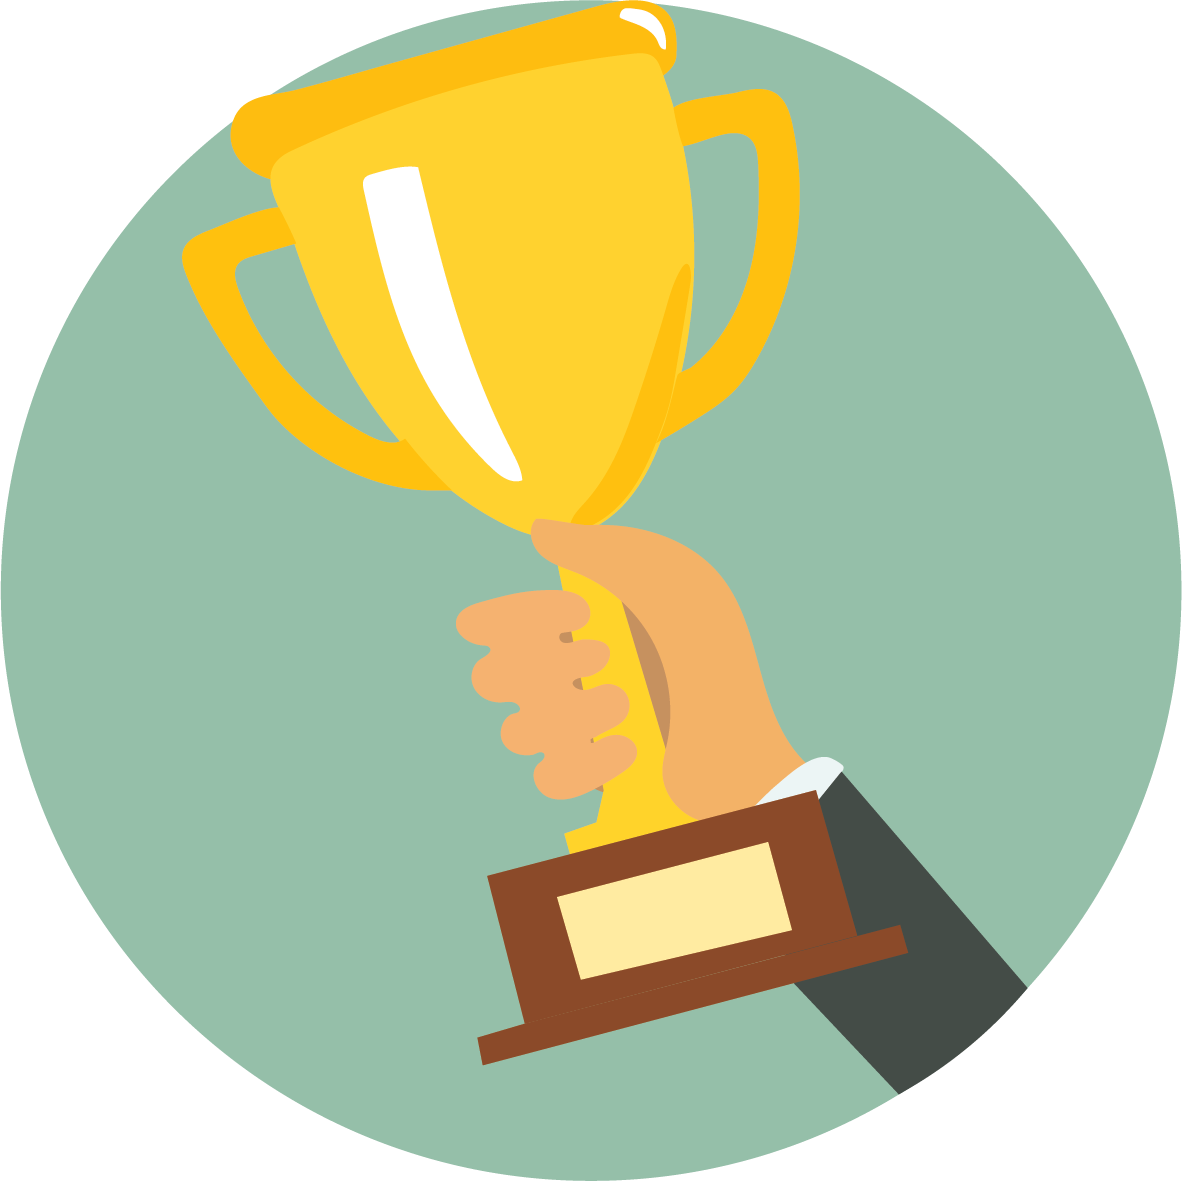 trophy in circle